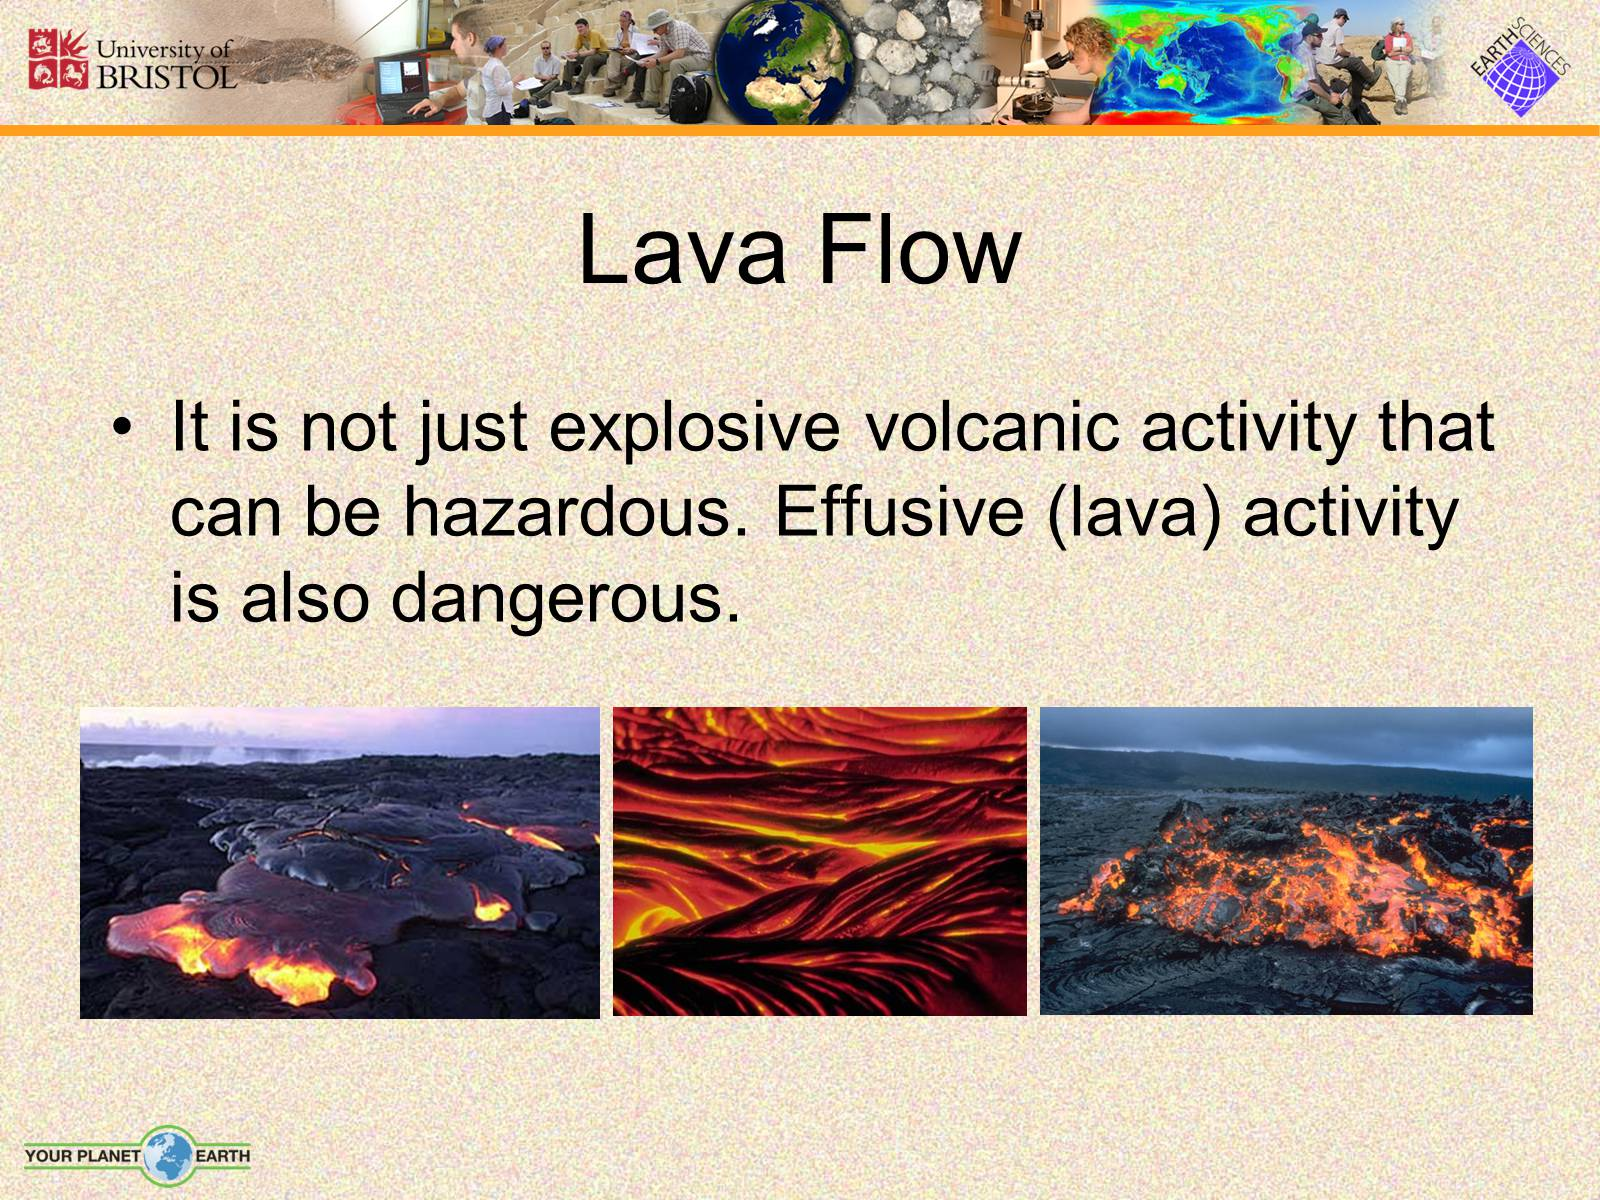 what makes a volcano hazardous